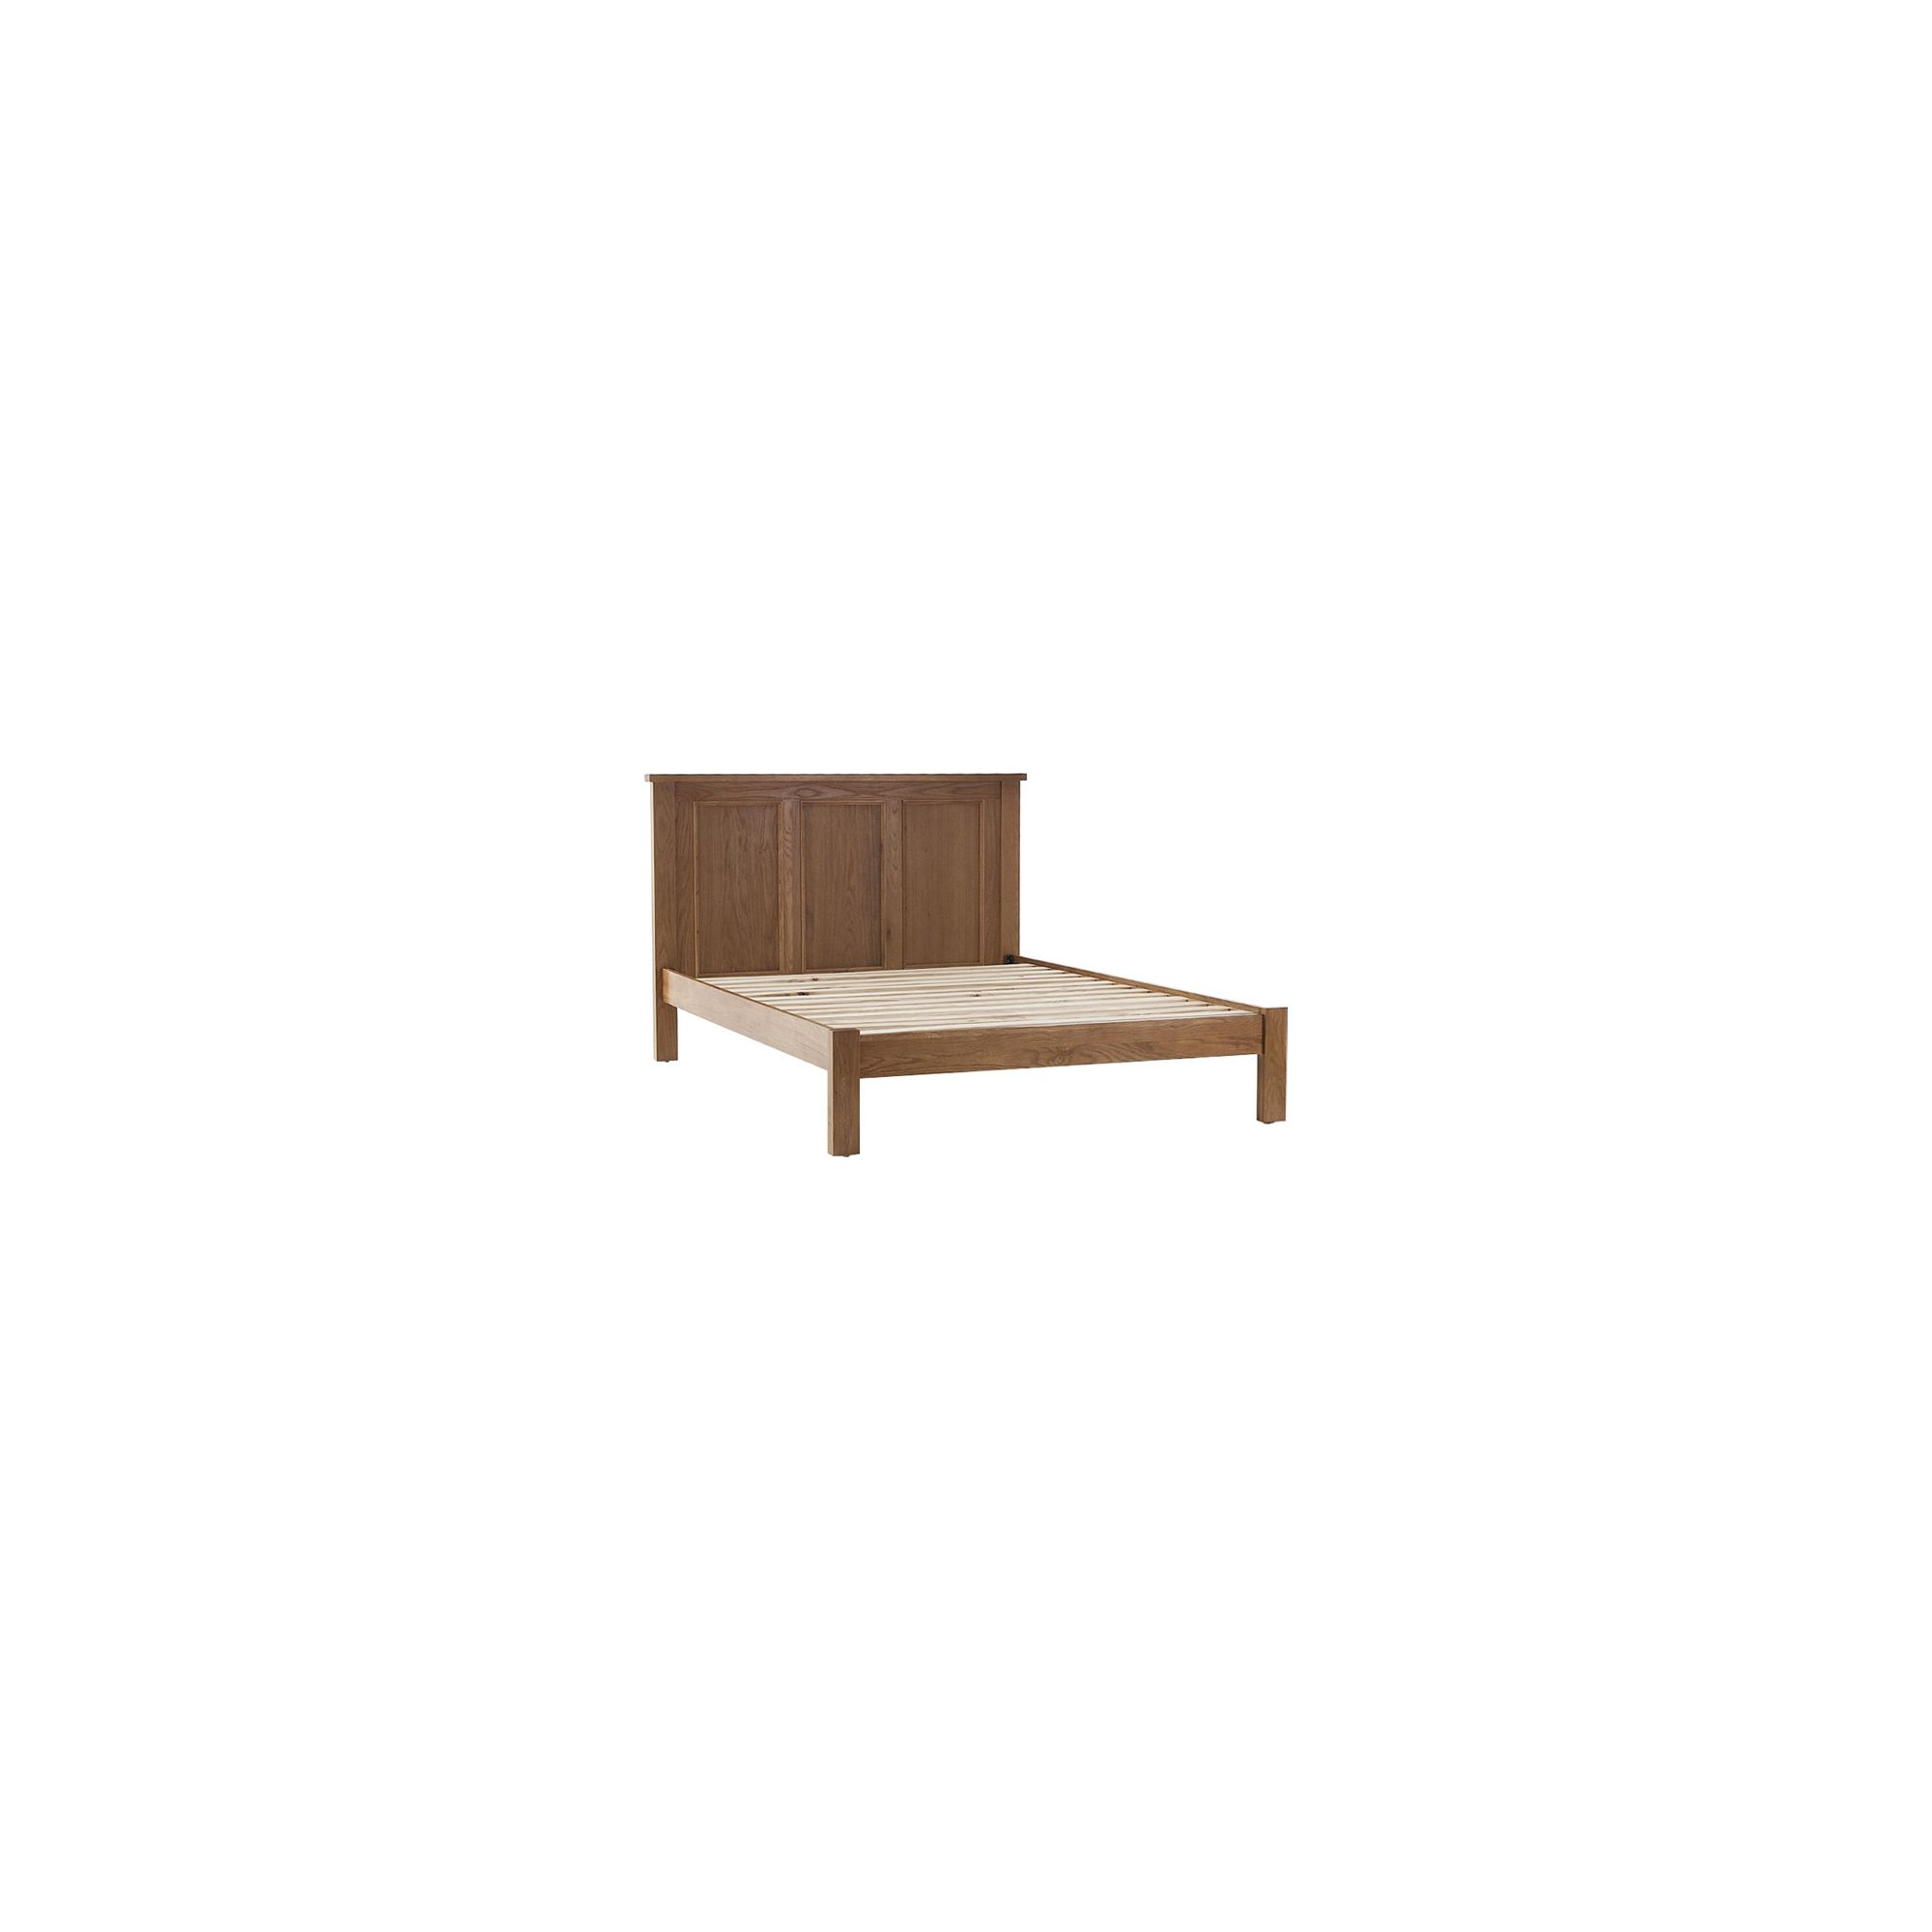 Thorndon Eden Bed Frame - King at Tesco Direct